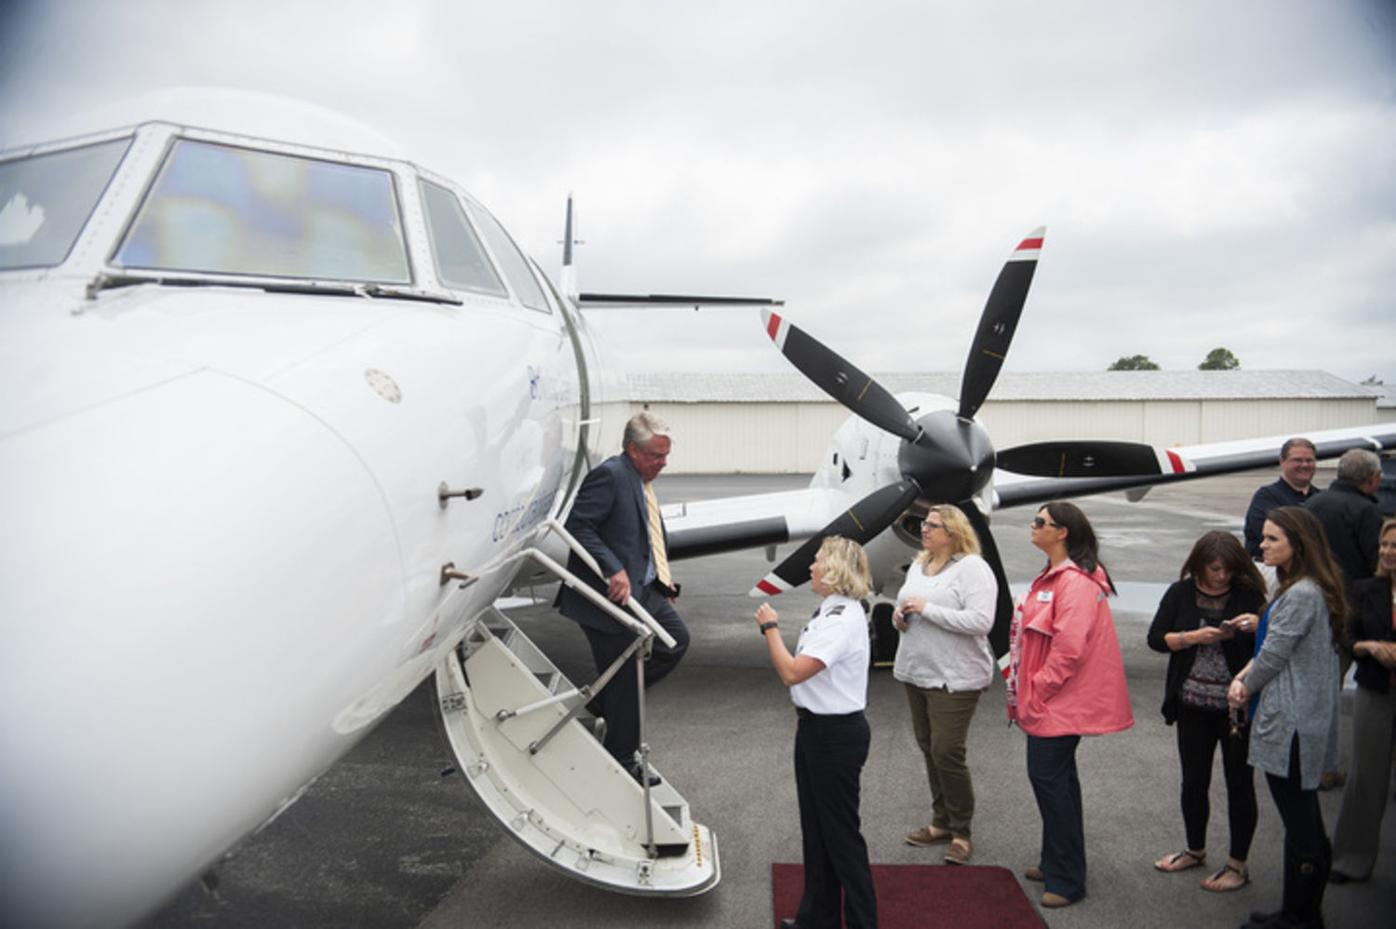 Local commercial air service takes flight after 44-year absence